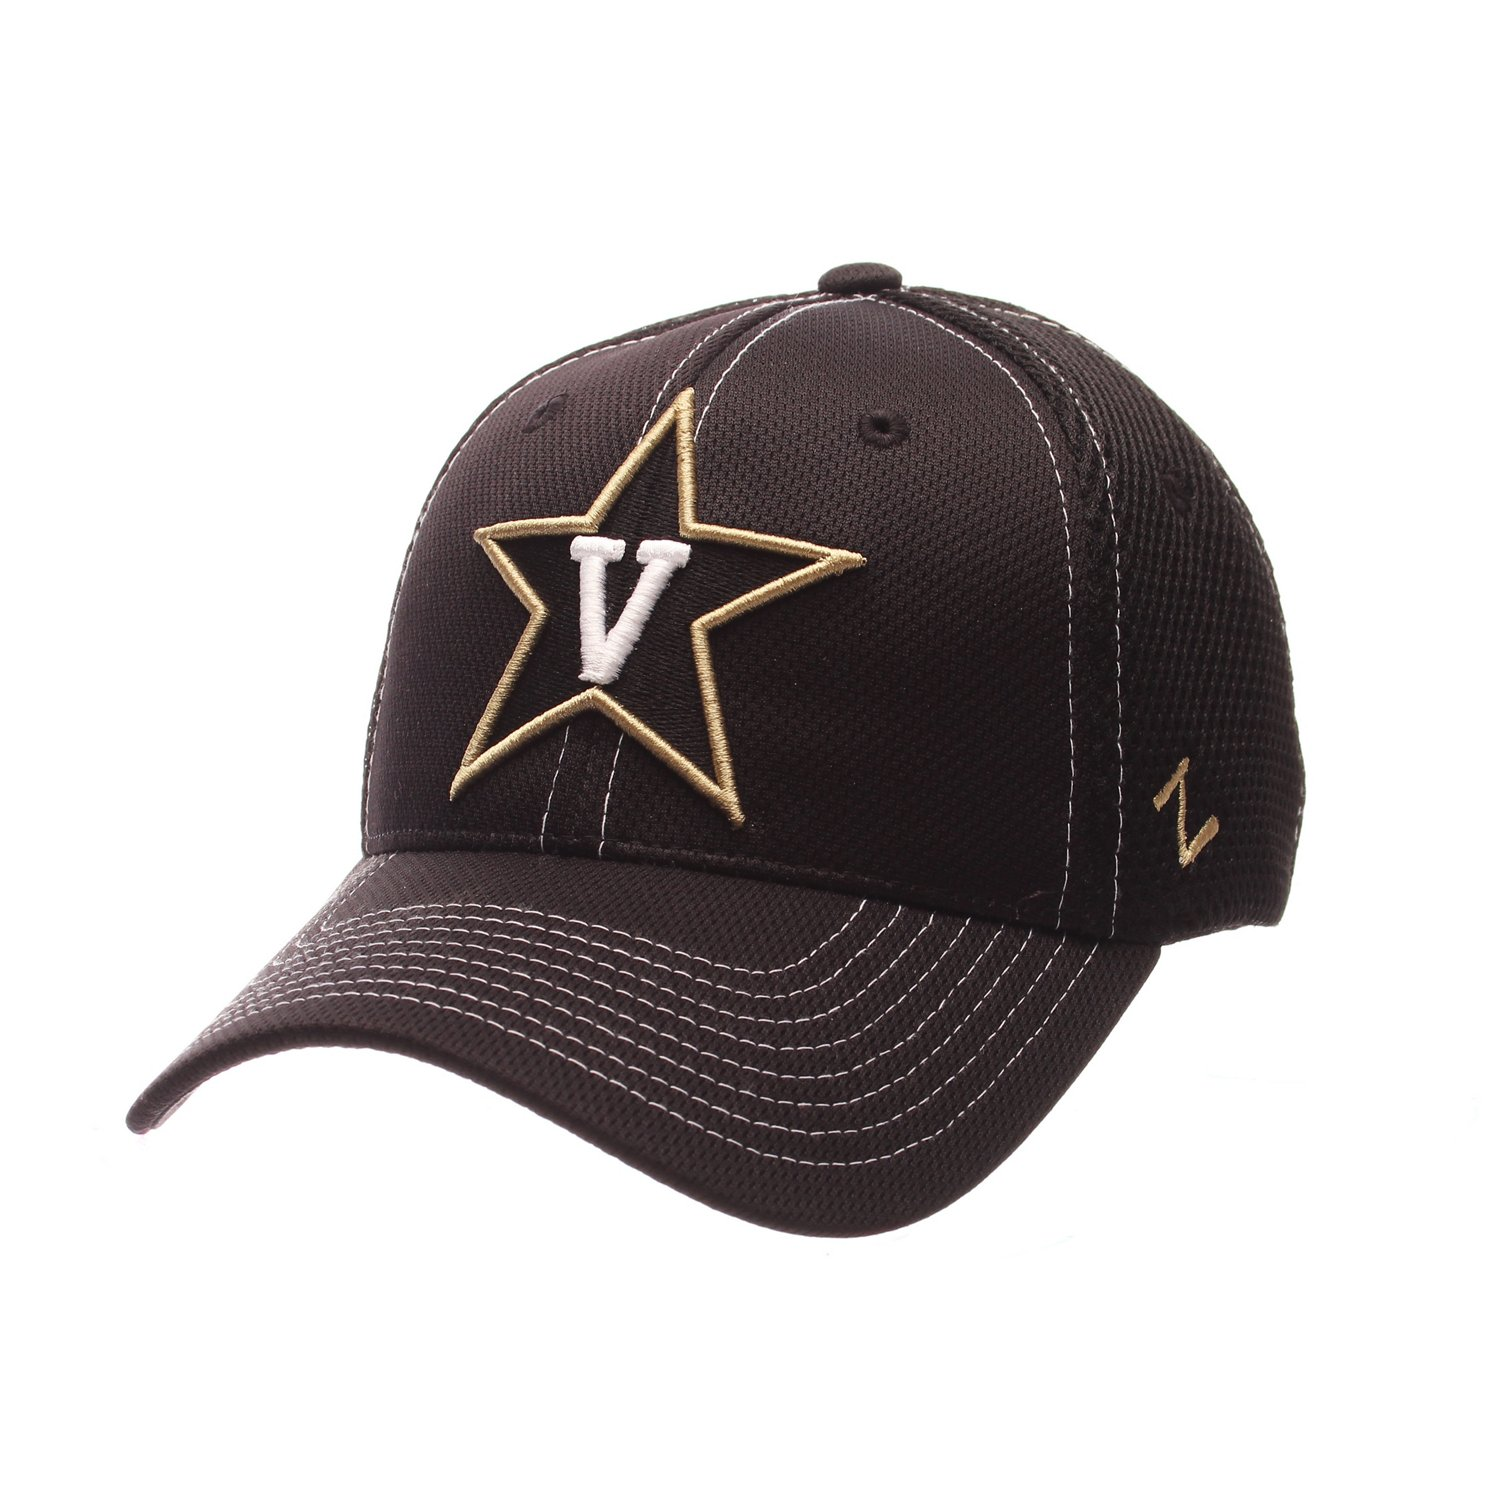 91717427407be Zephyr Men s Vanderbilt University Rally Cap